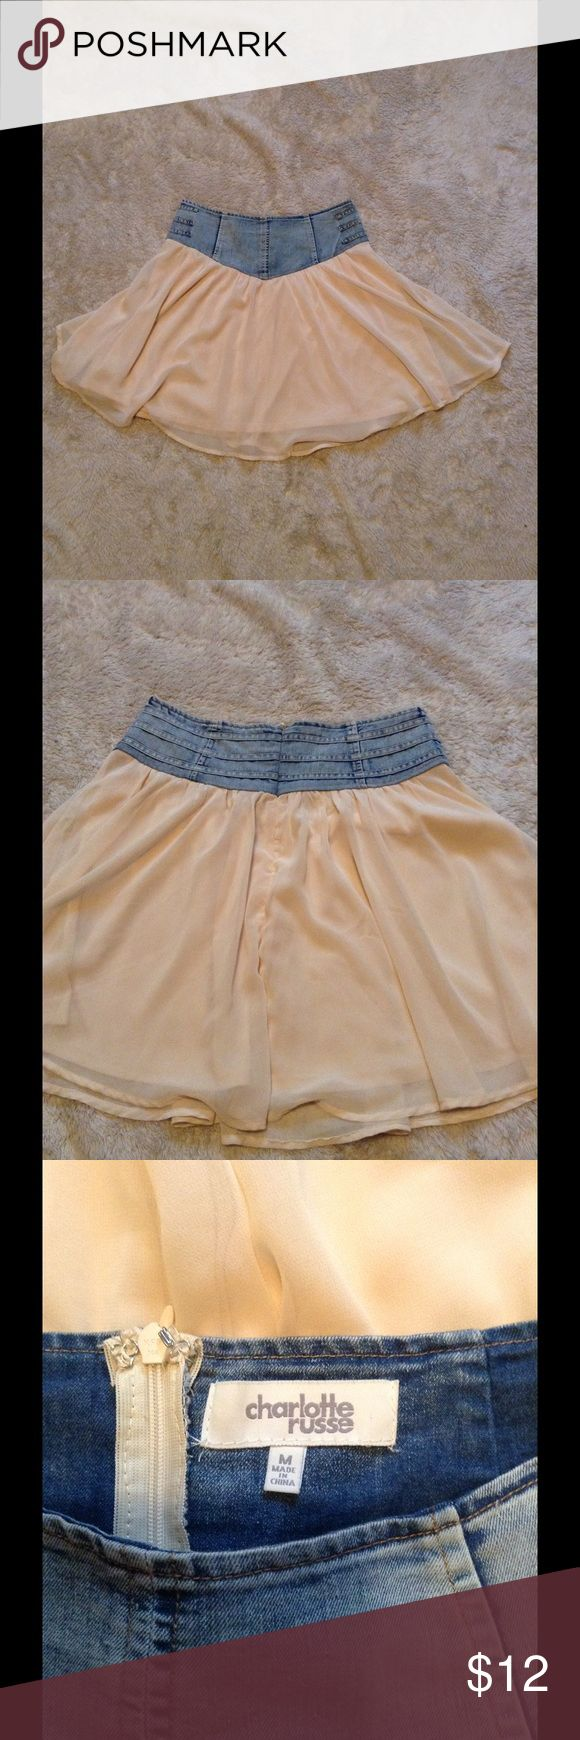 Denim top skater skirt with flowy bottom Unusual but adorable skirt with a denim waistband anda flowy cream color bottom. Size medium with zipper back 🌼 Charlotte Russe Skirts Mini